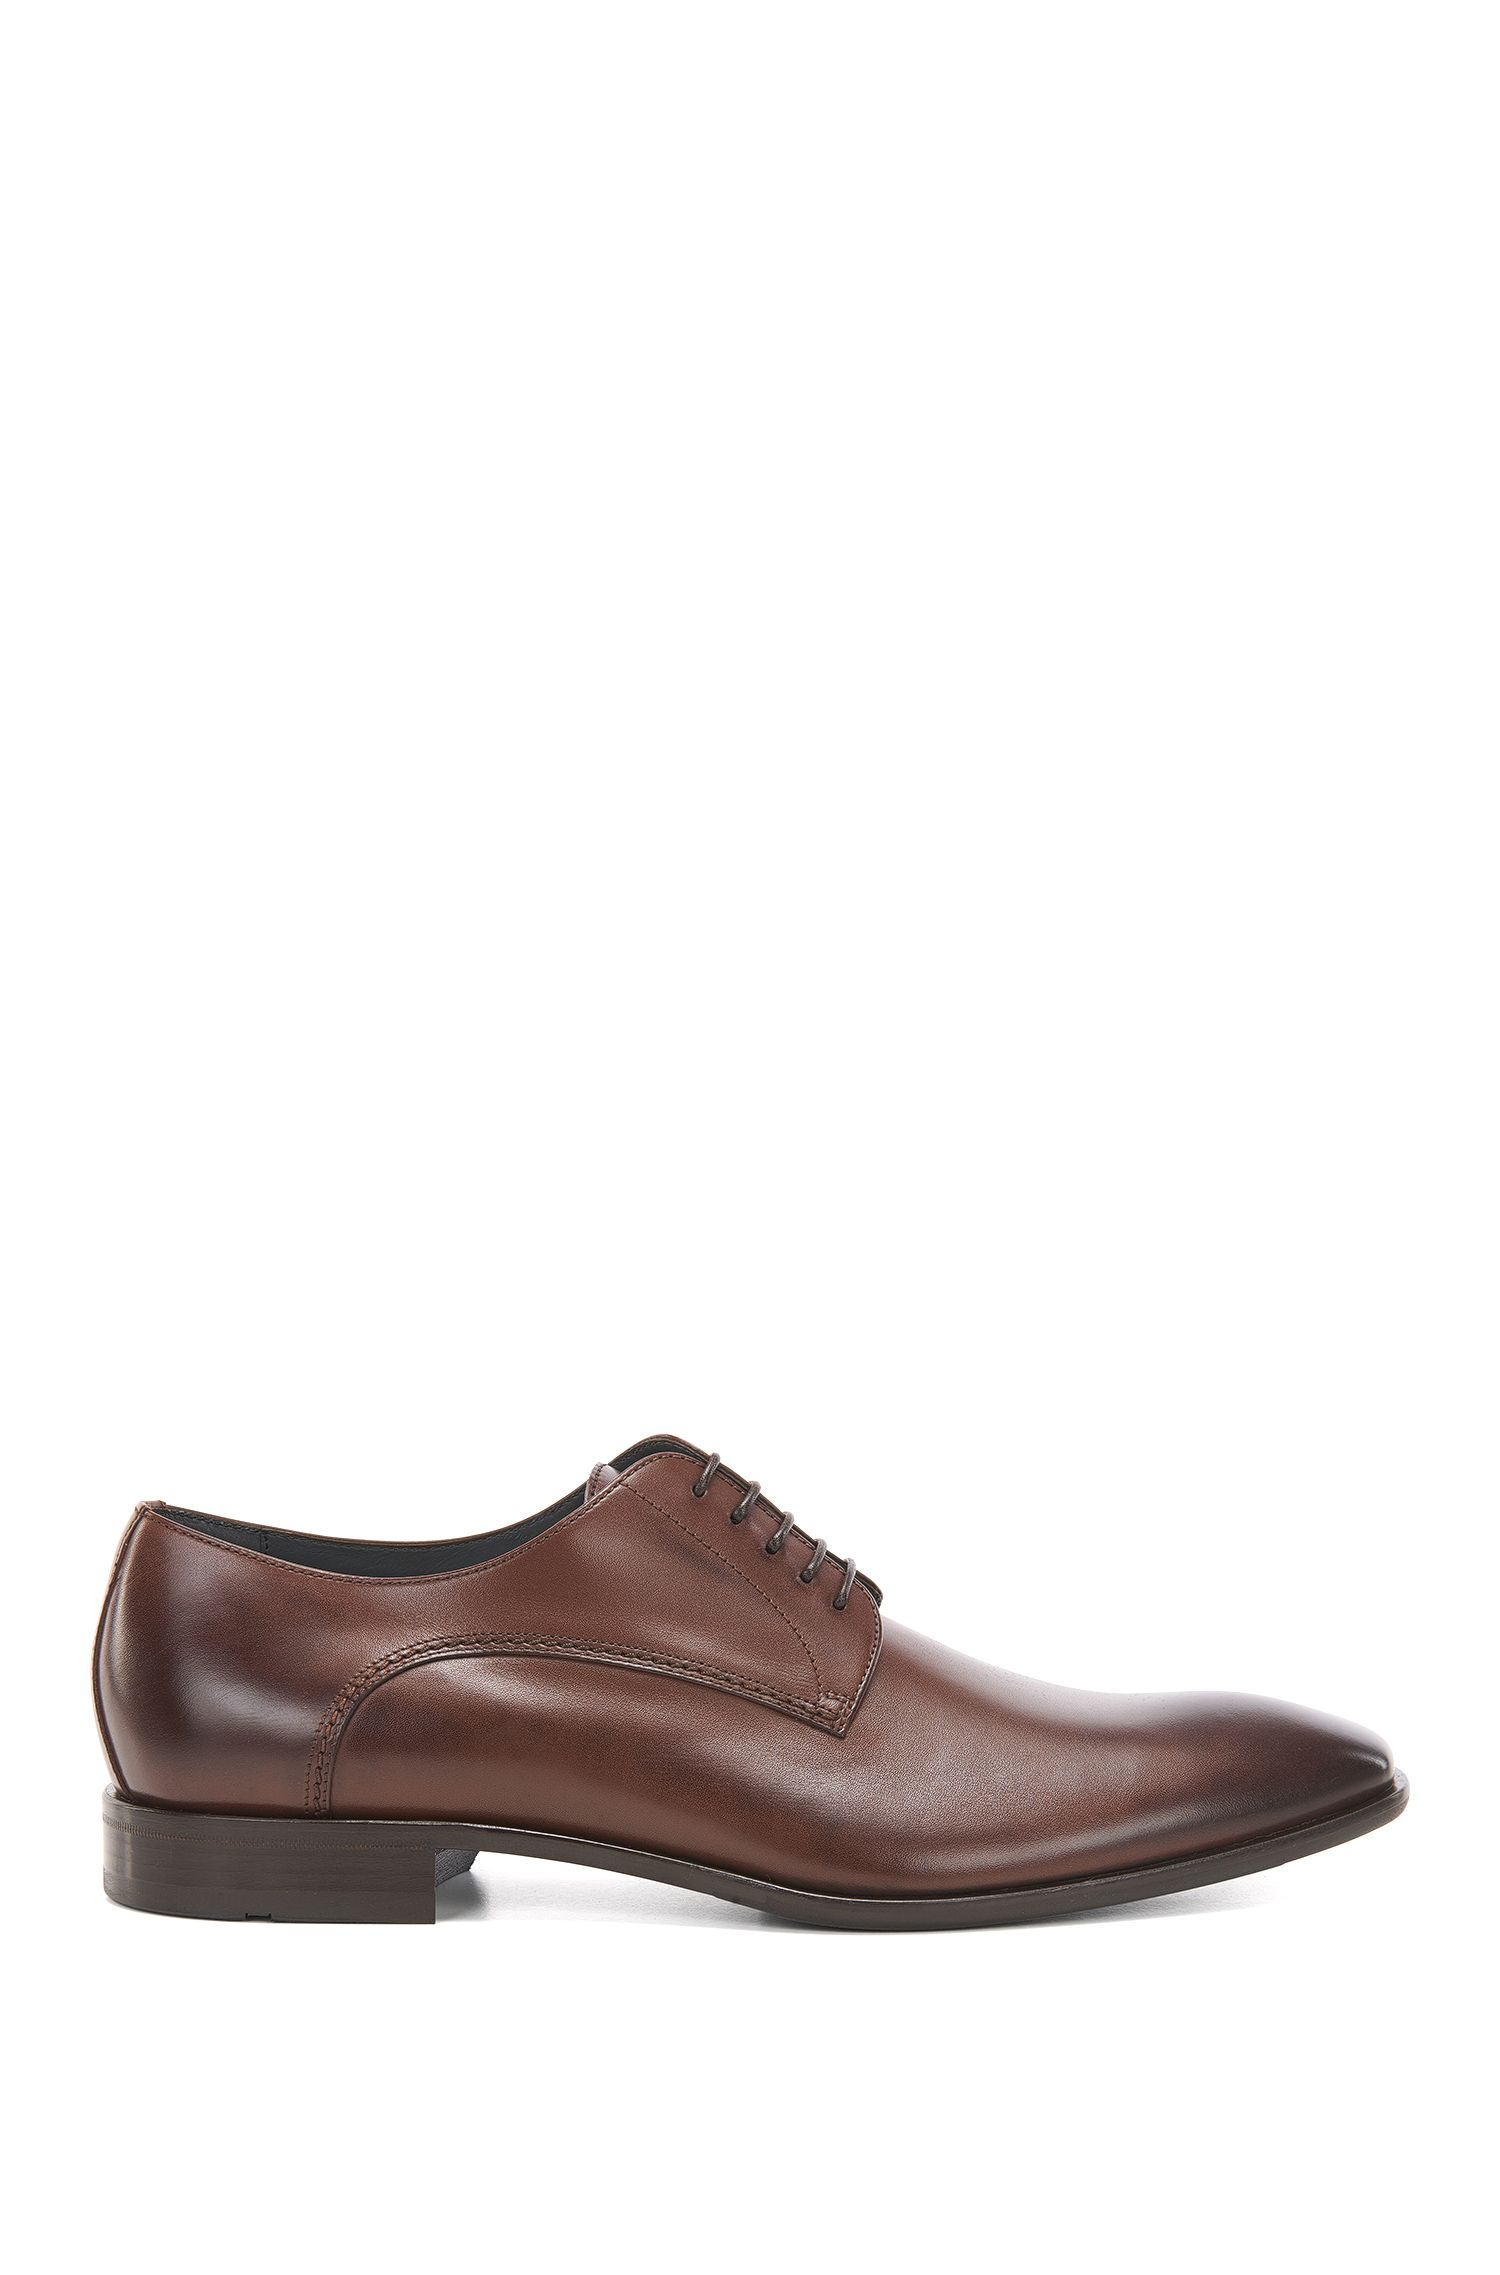 Leather Oxford shoes with antique finish